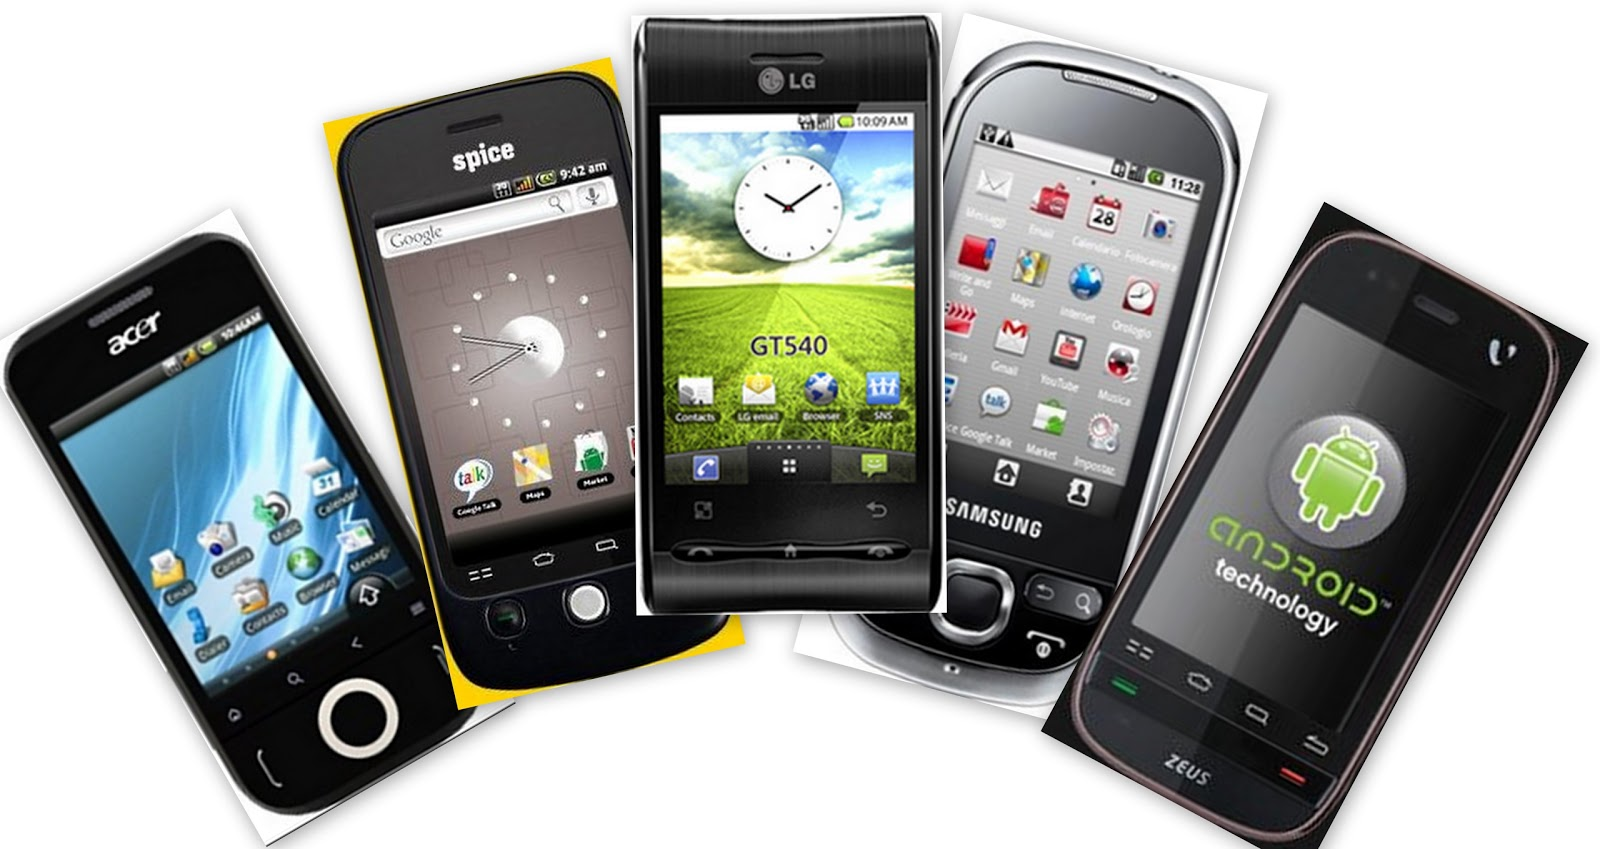 Phone Android Phones In Market interesting facts best android phones in the market as of now now